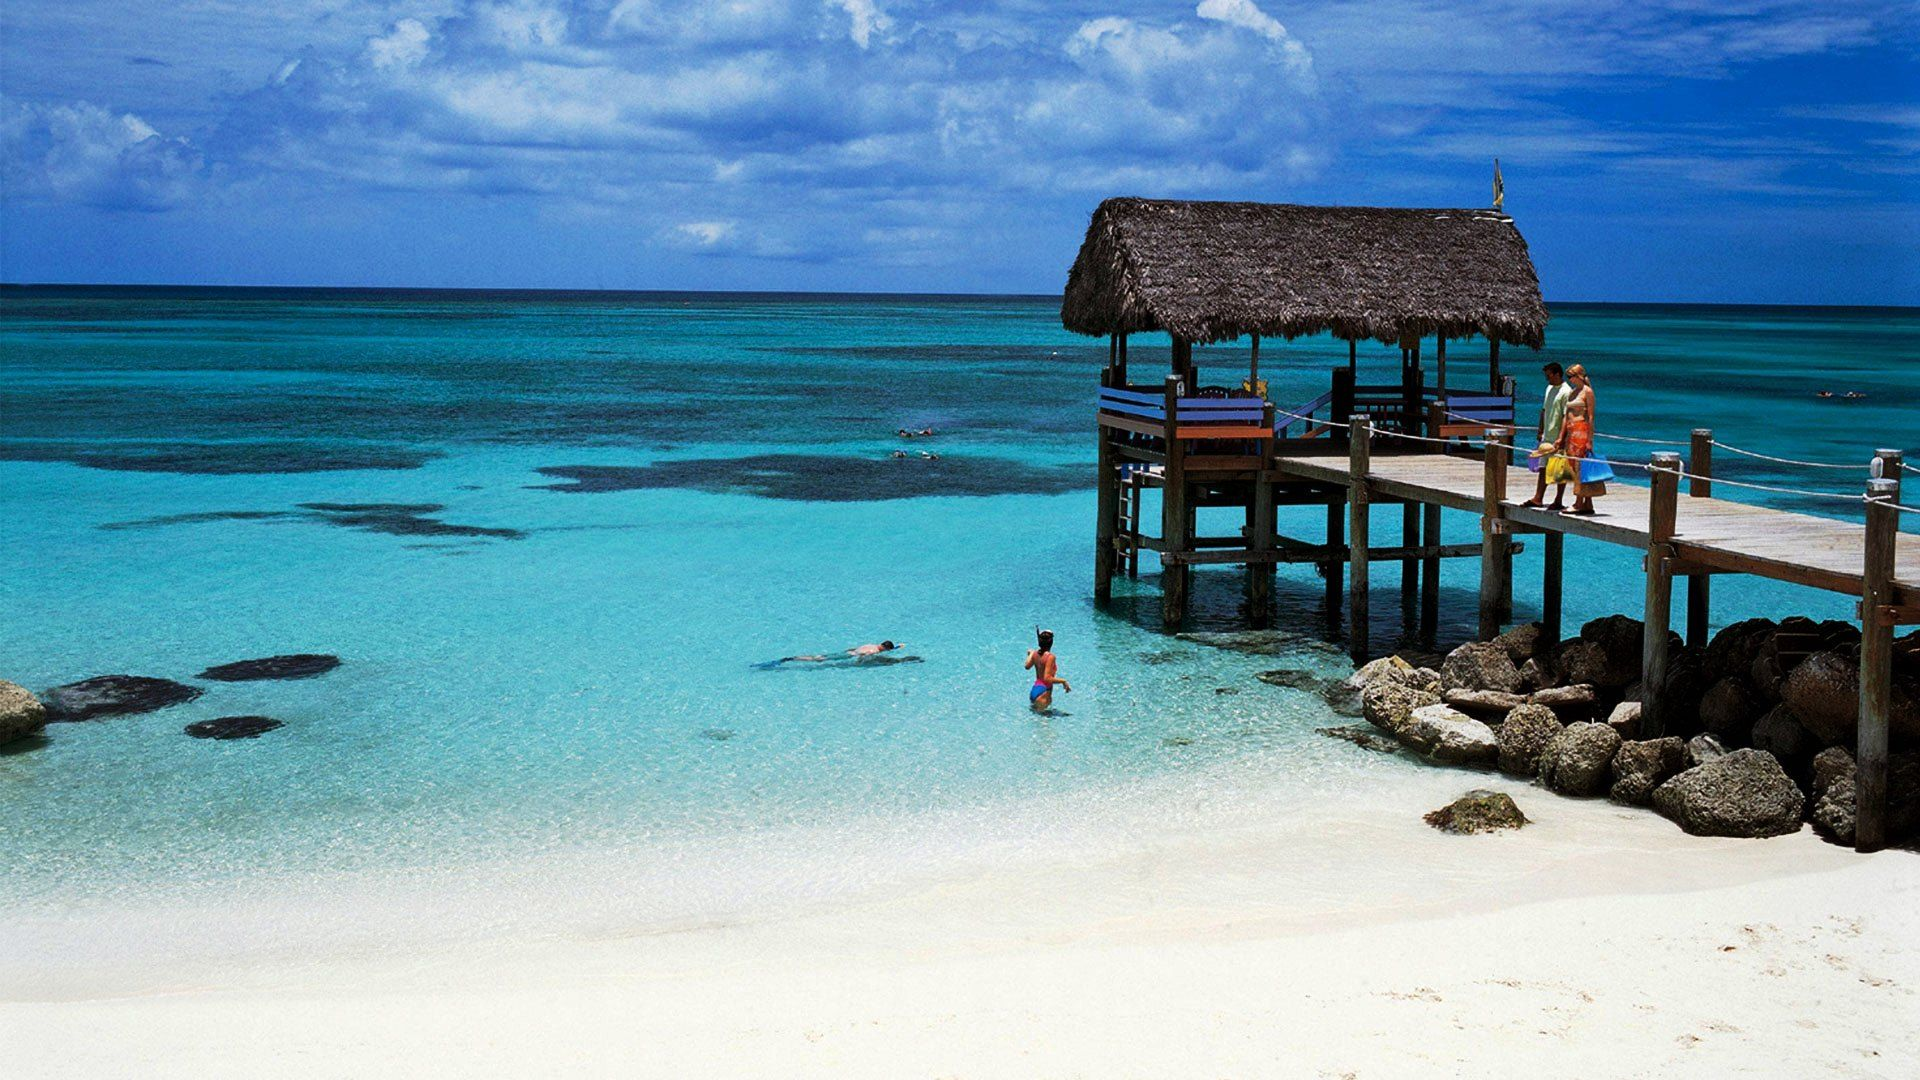 Bahamas picture free download